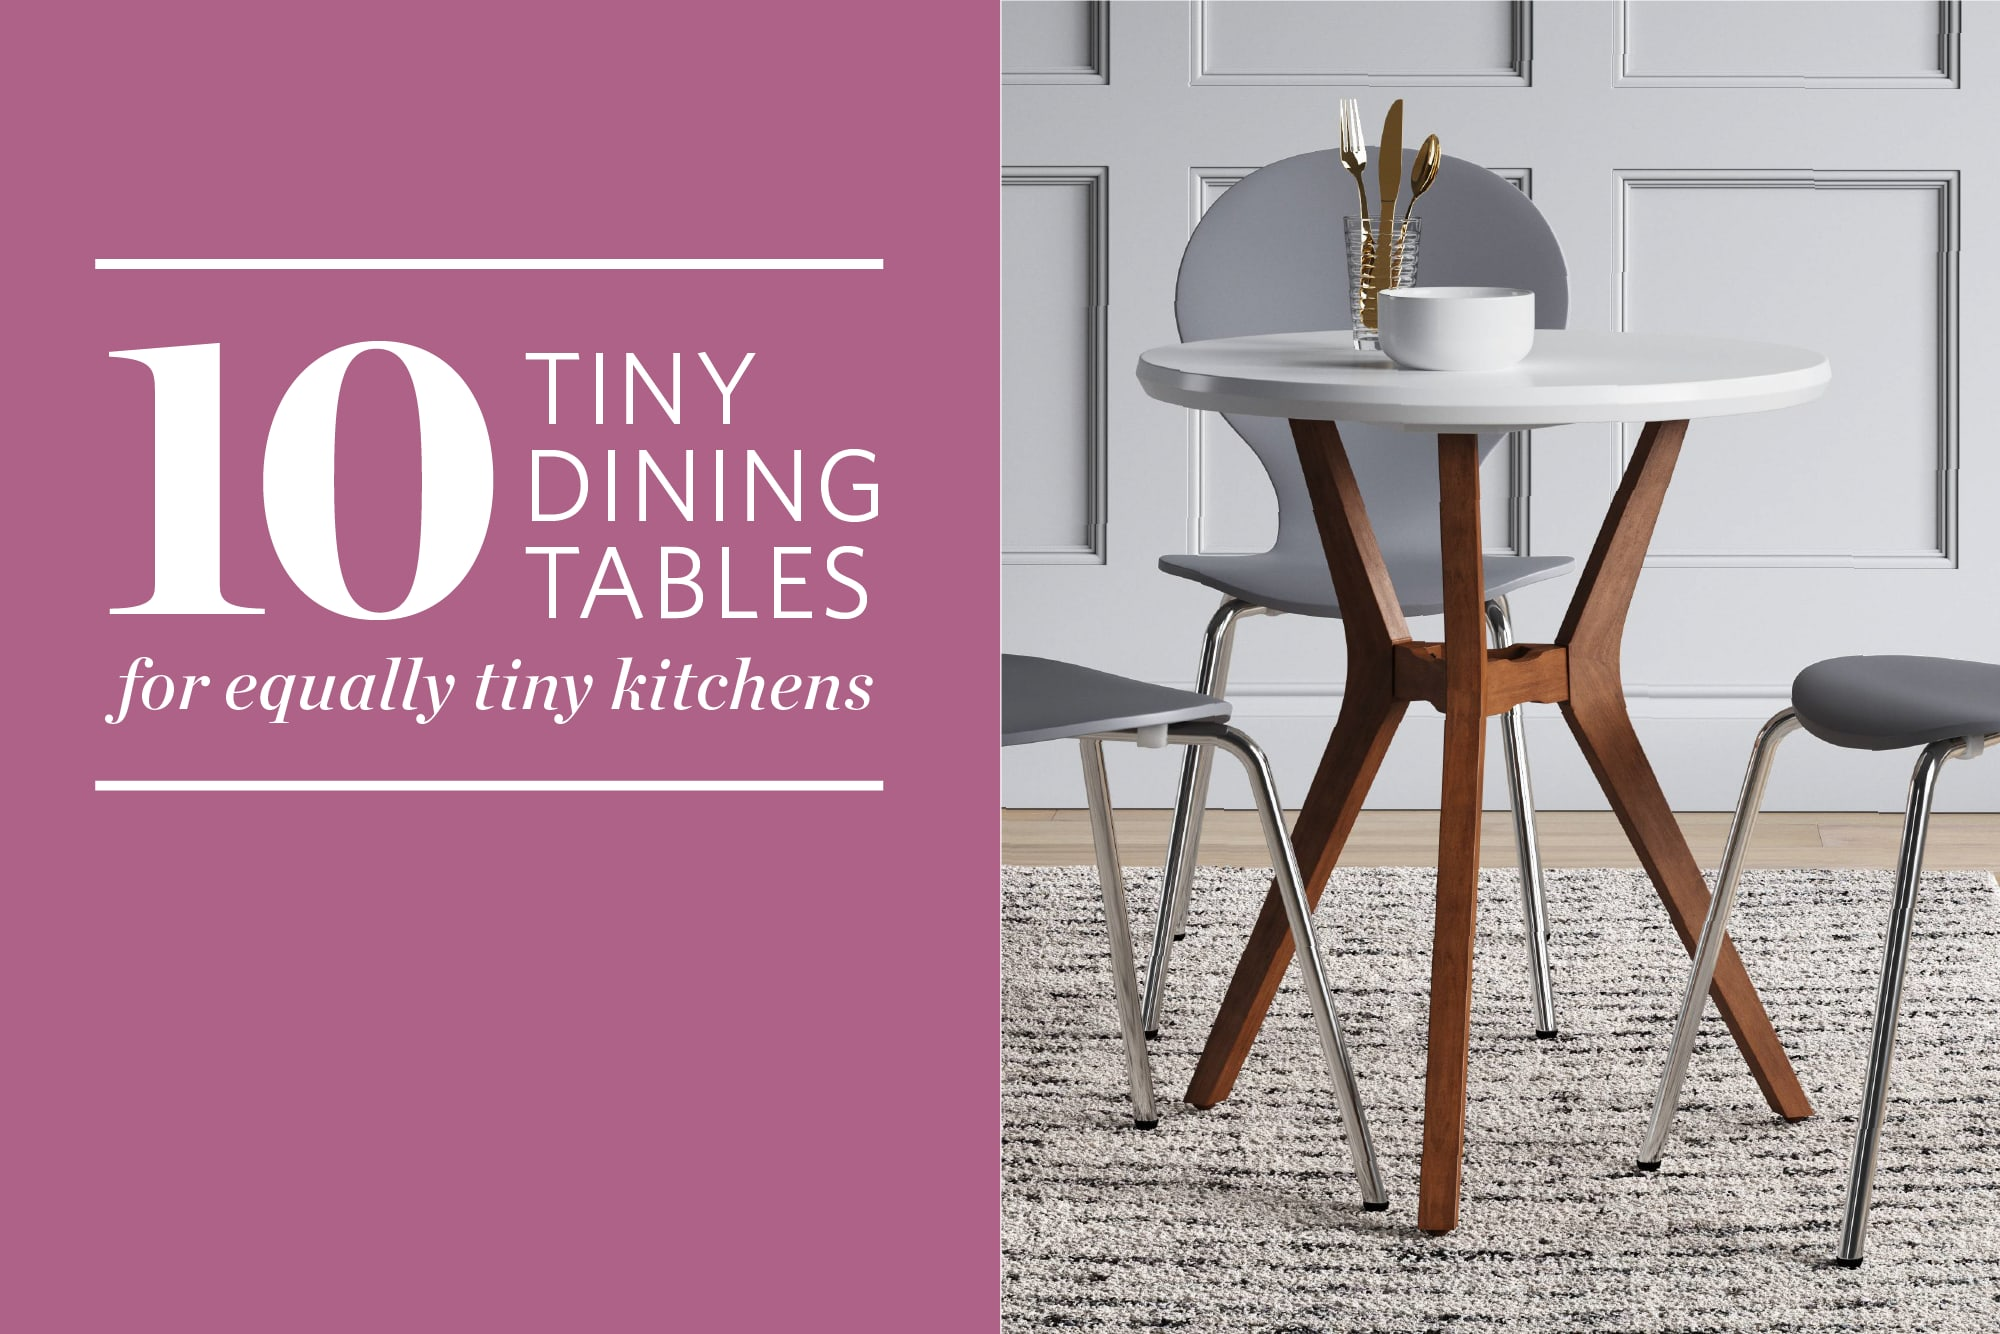 10 Inexpensive Dining Tables For Small Kitchens Kitchn